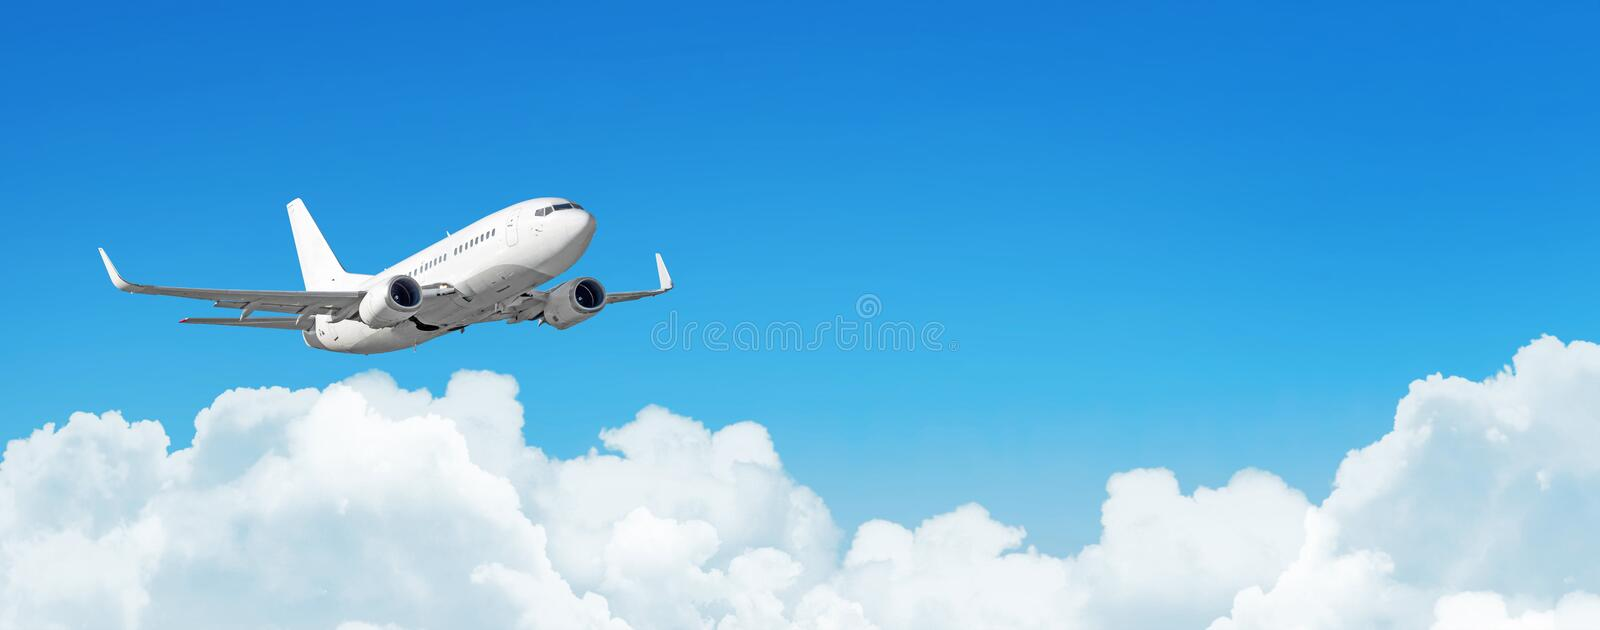 Passenger aircraft cloudscape with white airplane is flying in the daytime sky cumulus clouds, panorama view. royalty free stock photos